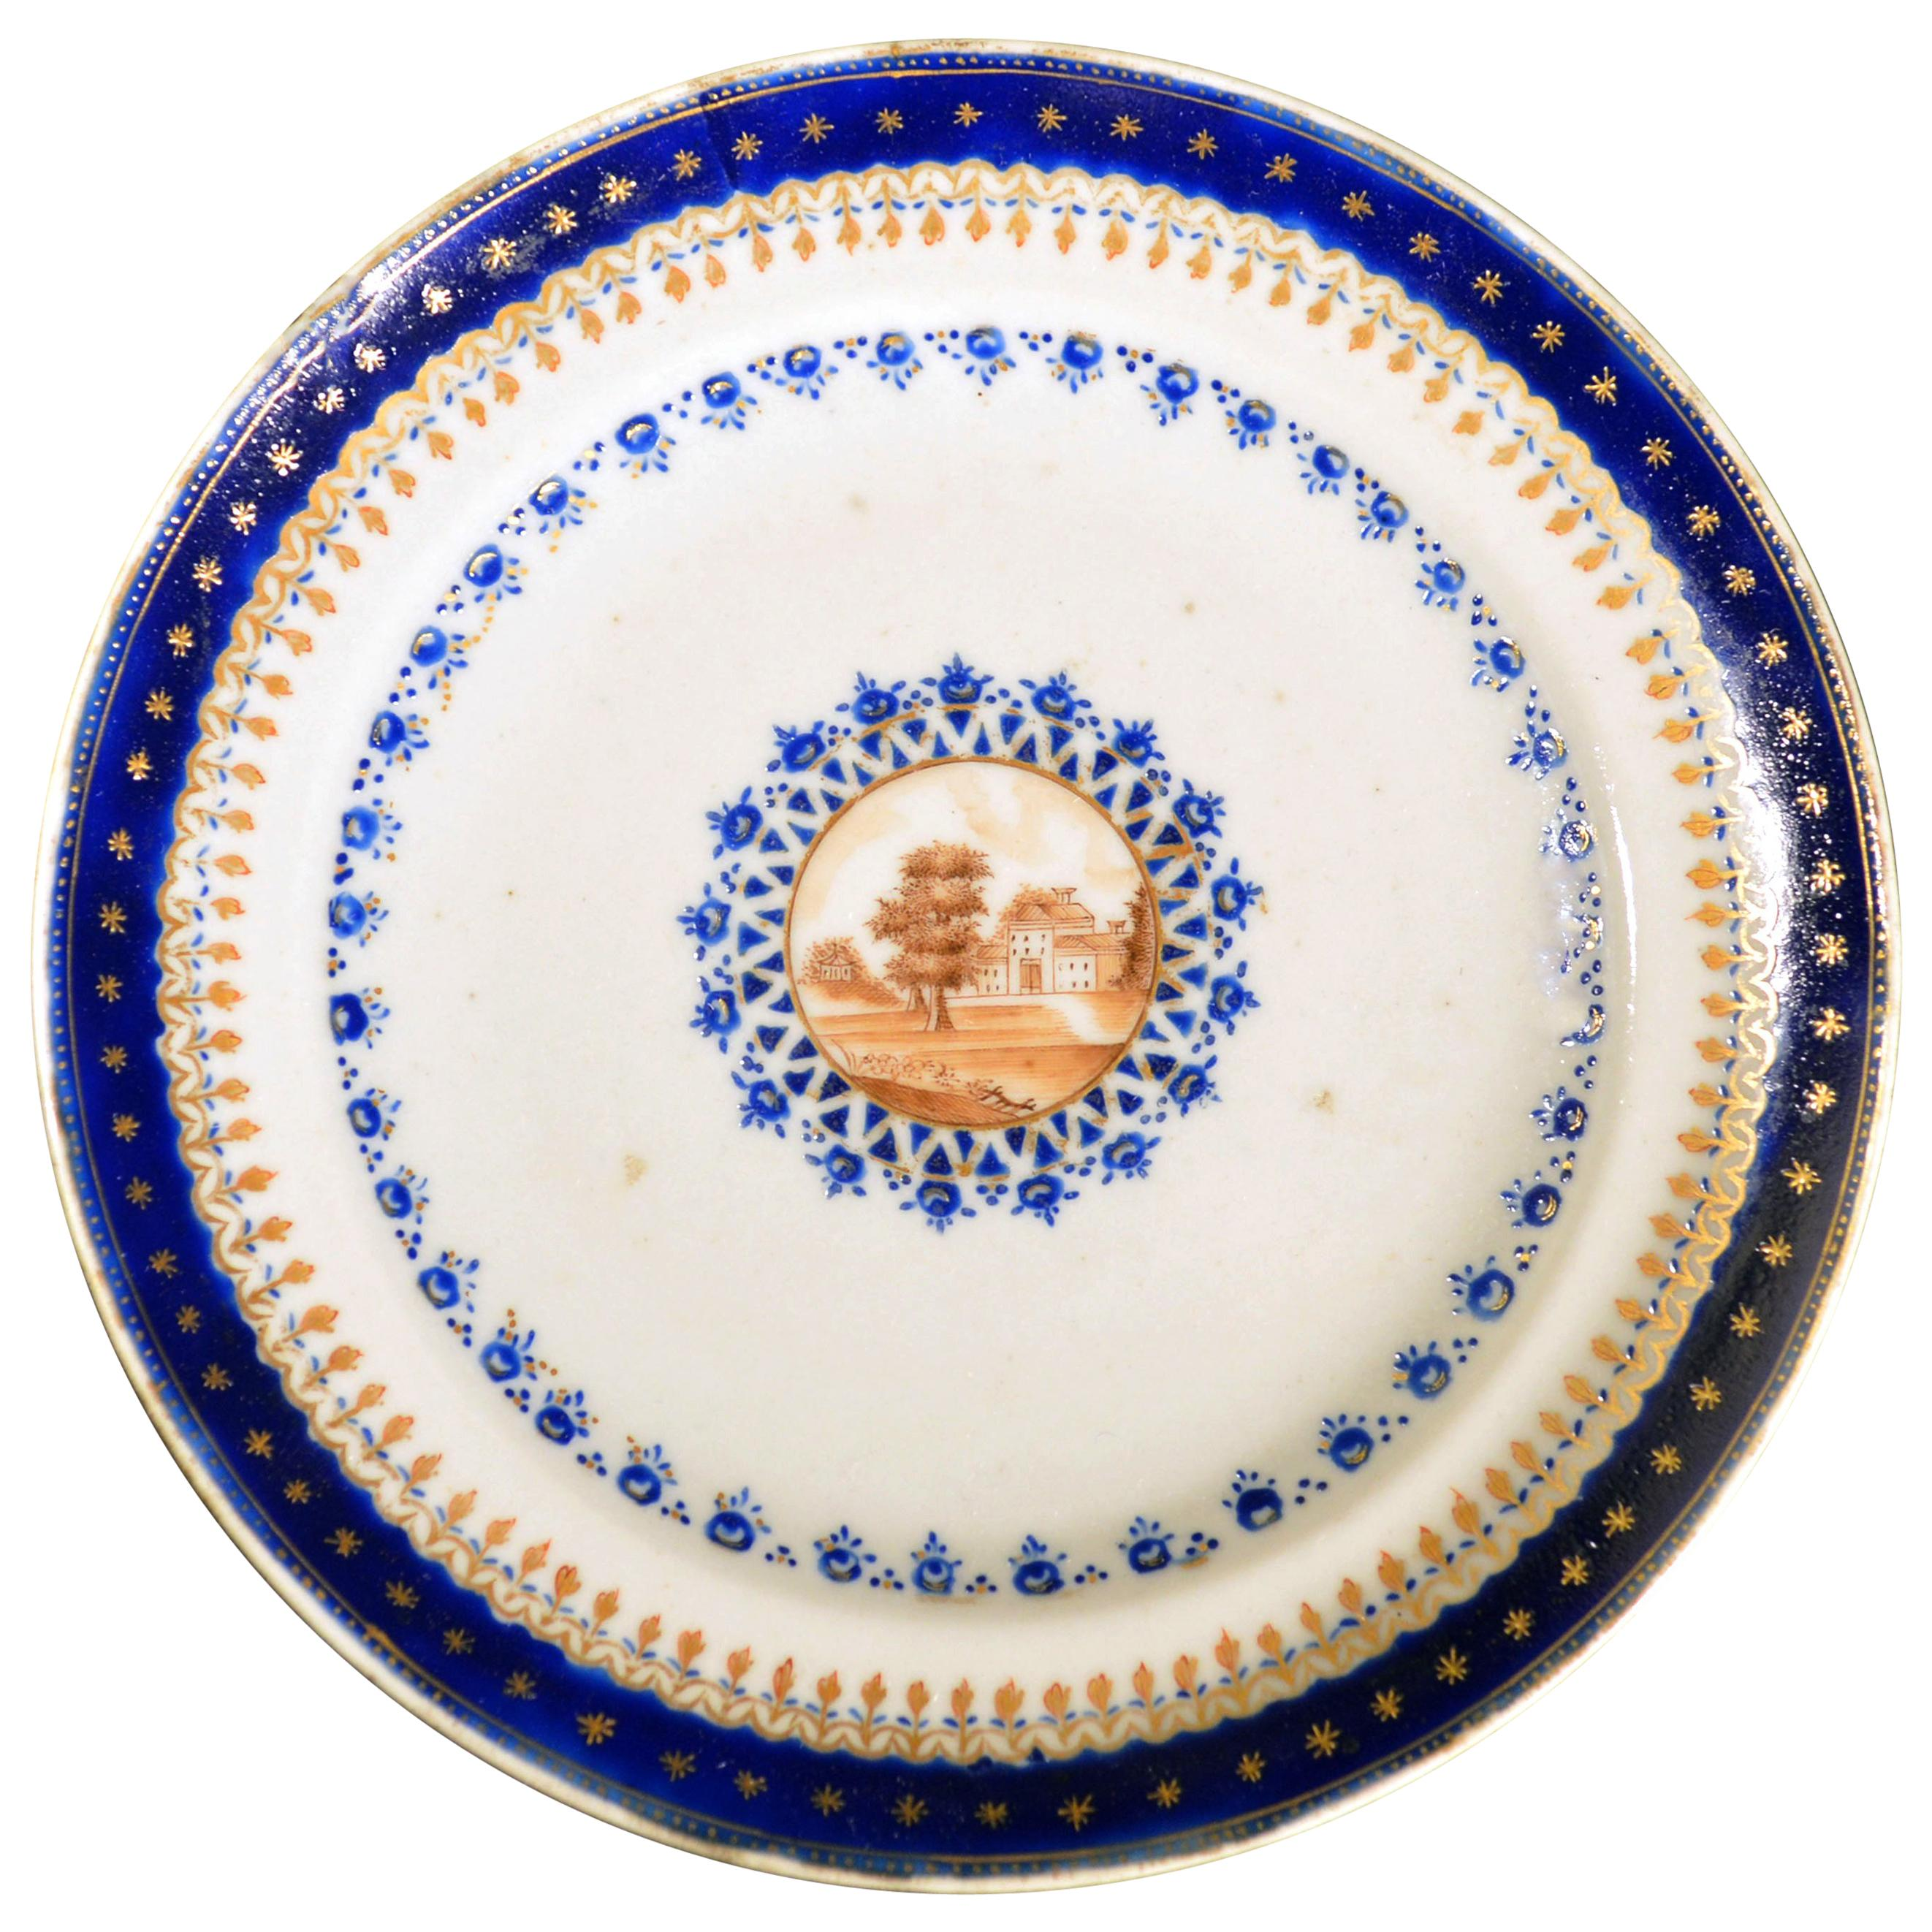 Chinese Export Porcelain Blue Enamel Plate Made for the American Market